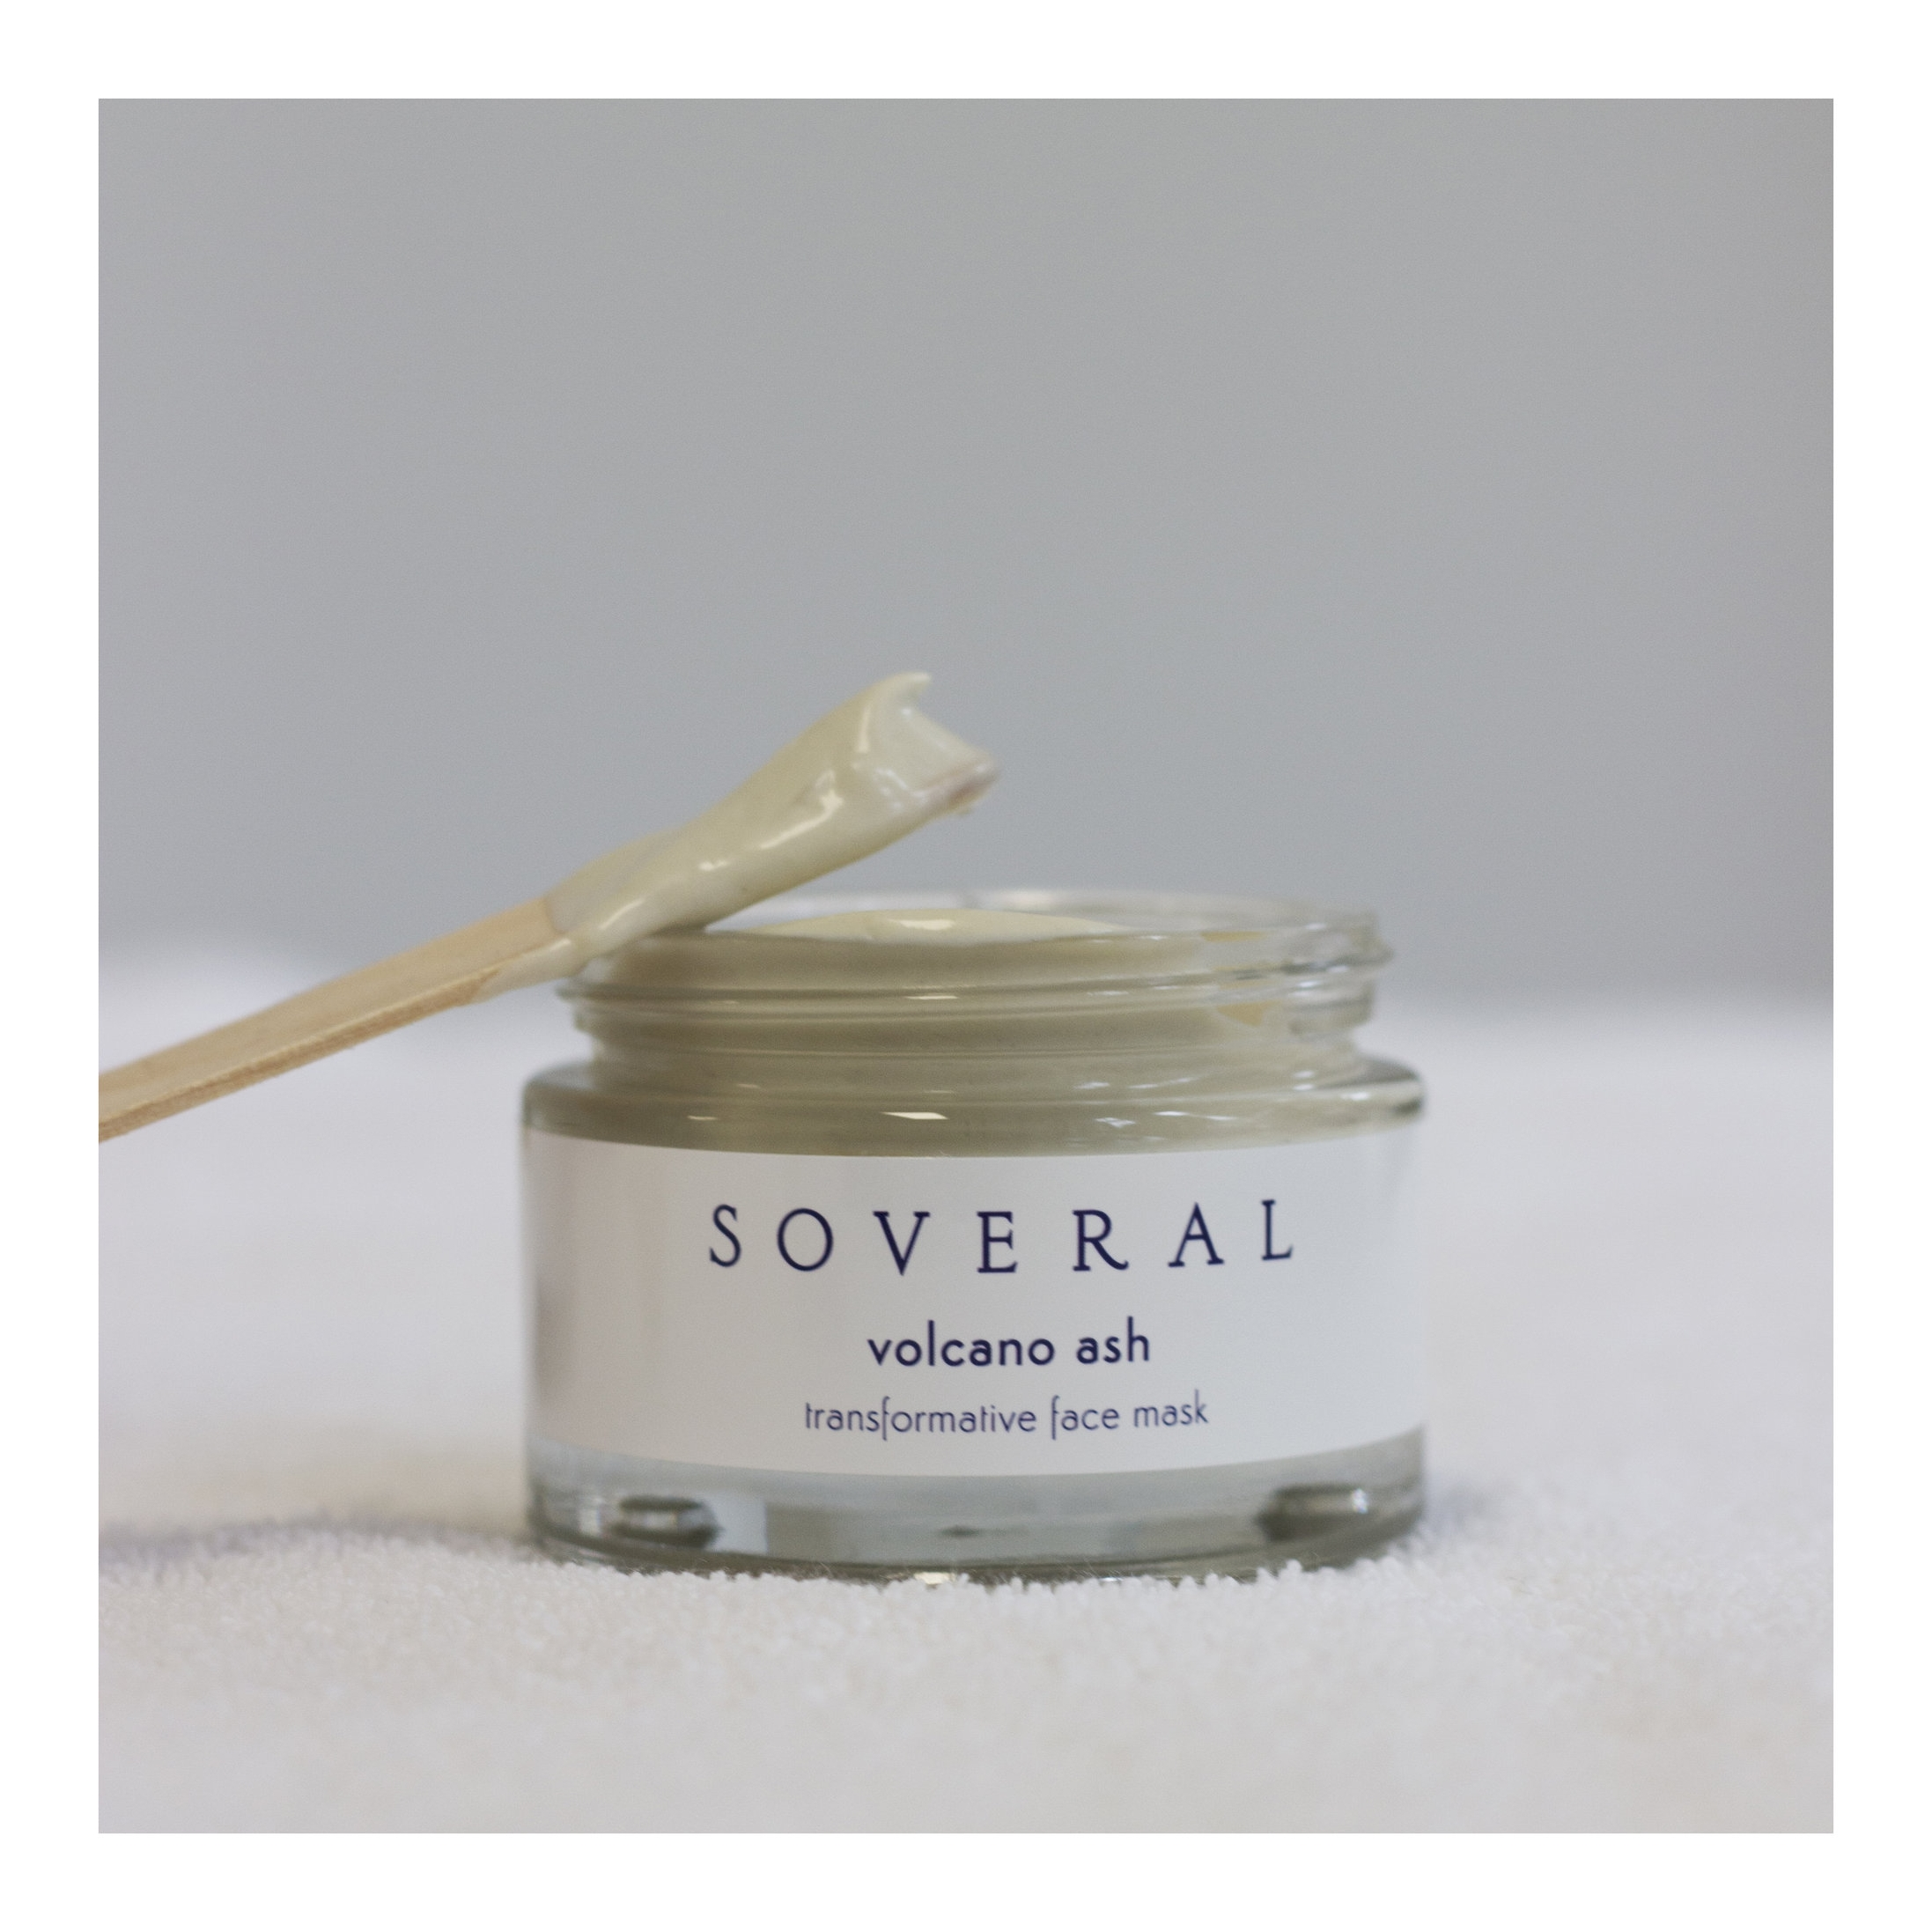 Soveral's 'Volcano Ash' Face Mask